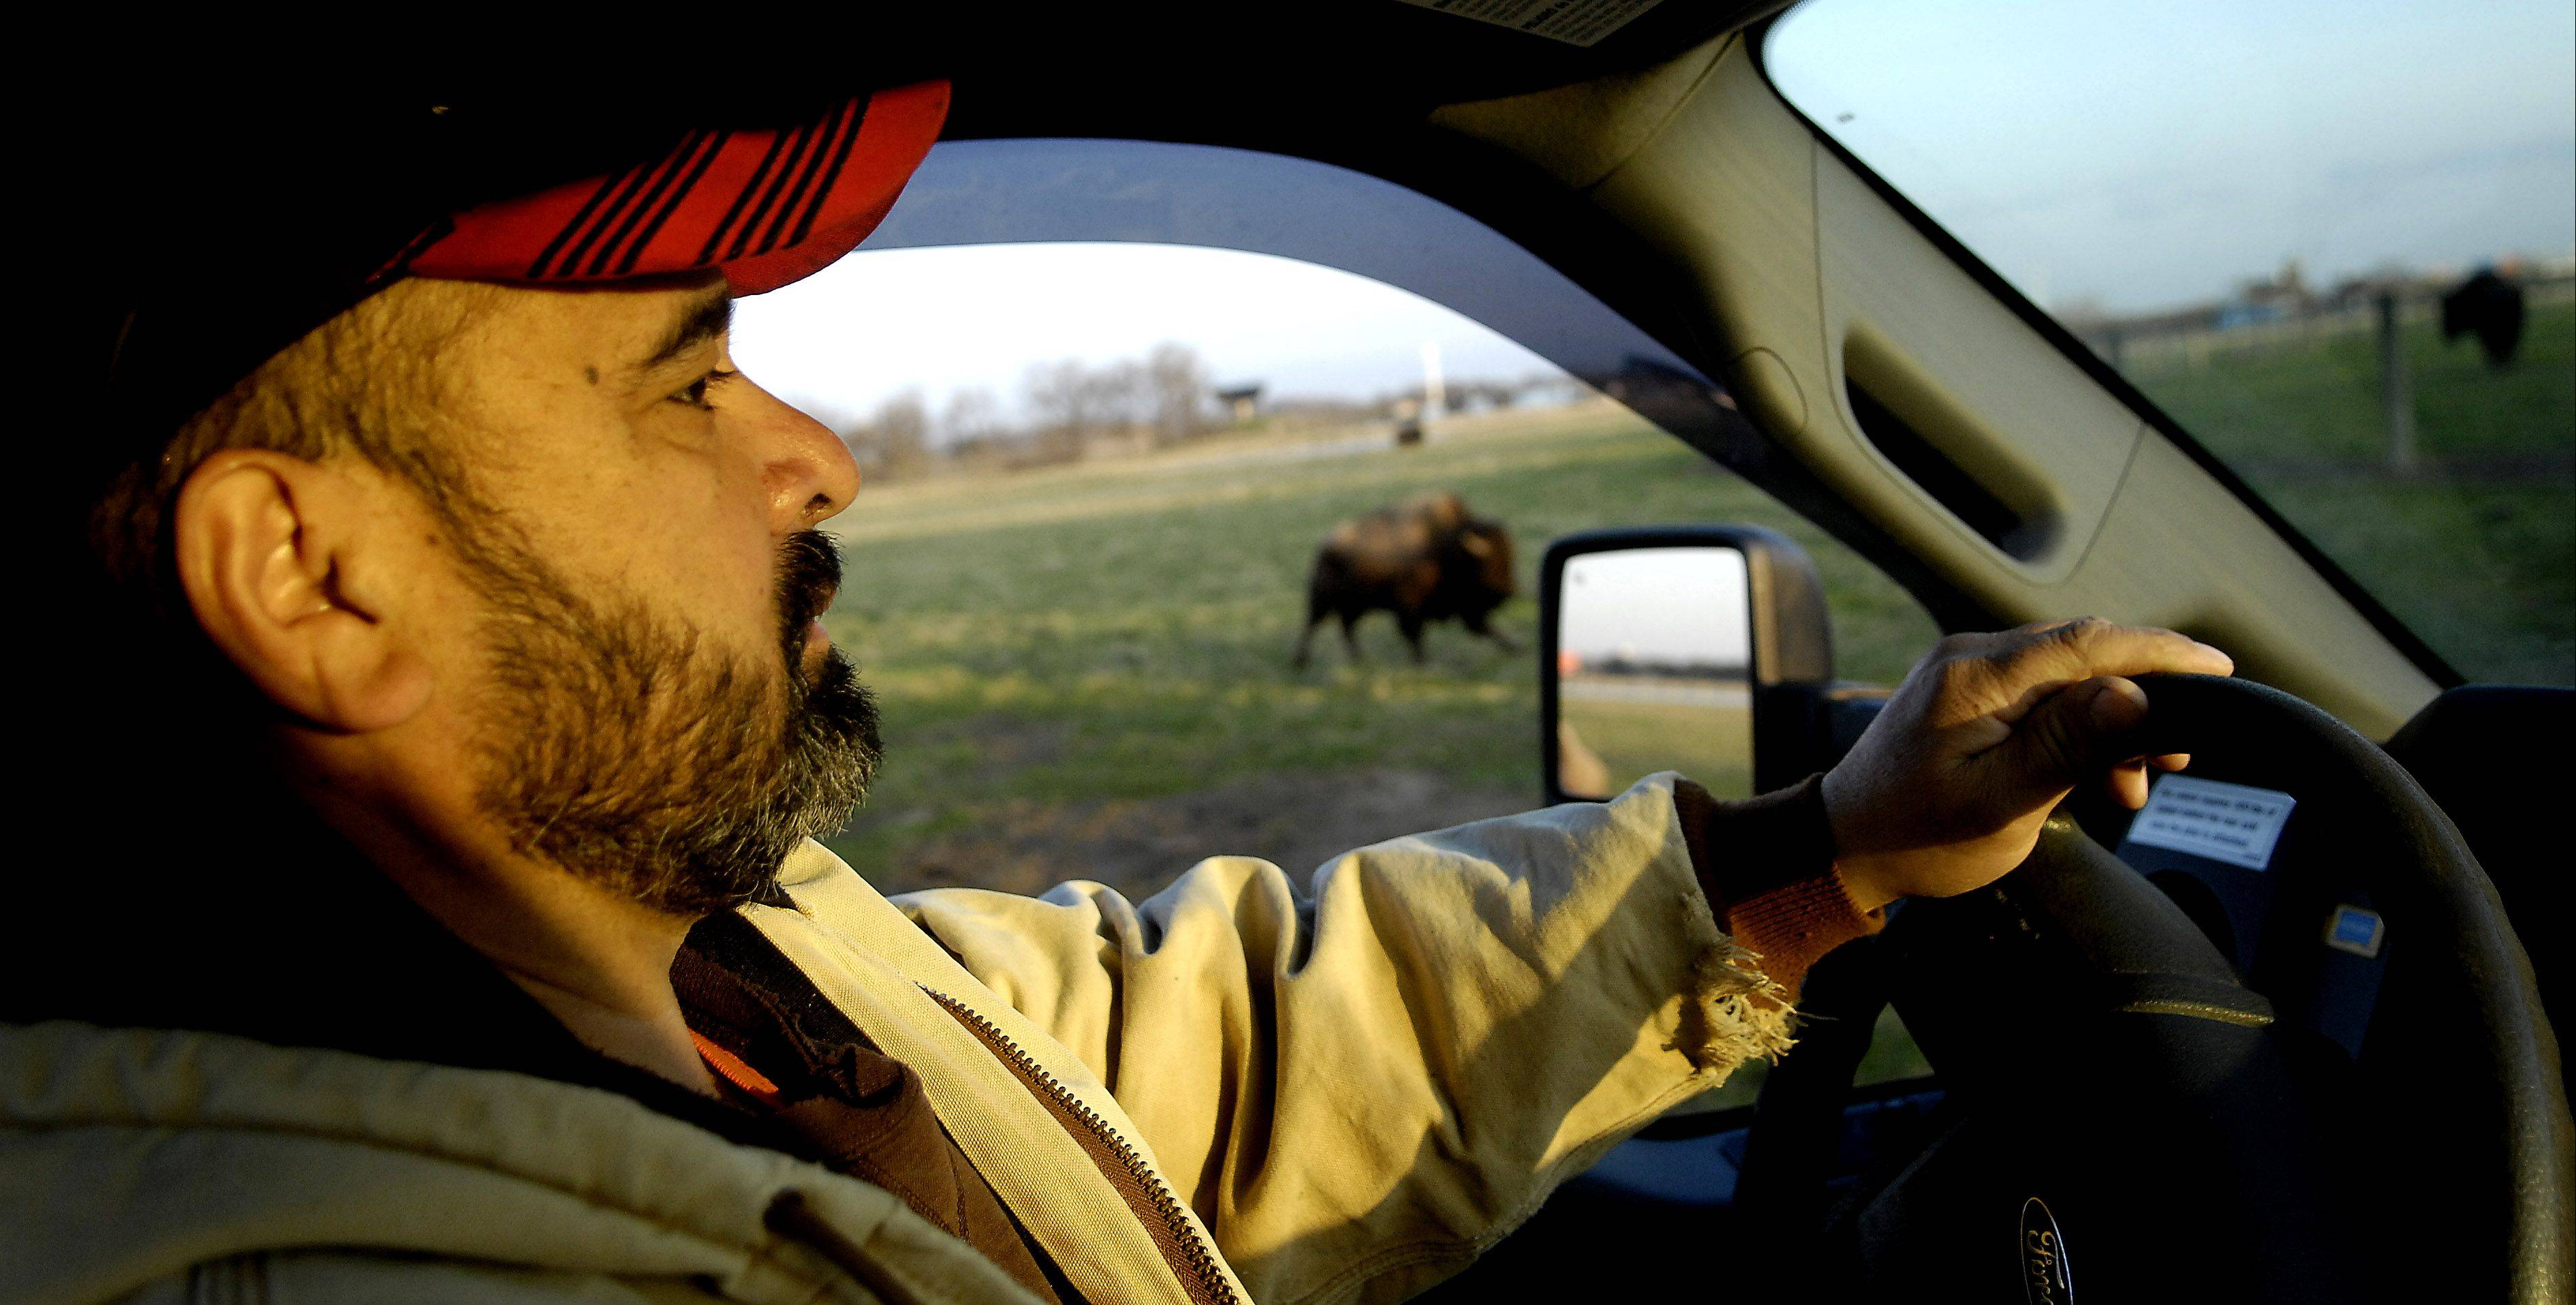 Cleo Garcia drives through the pasture as he checks on the bison herd just after sunrise. The bison are used to him and his truck but he stays in the cab because of their unpredictable nature.